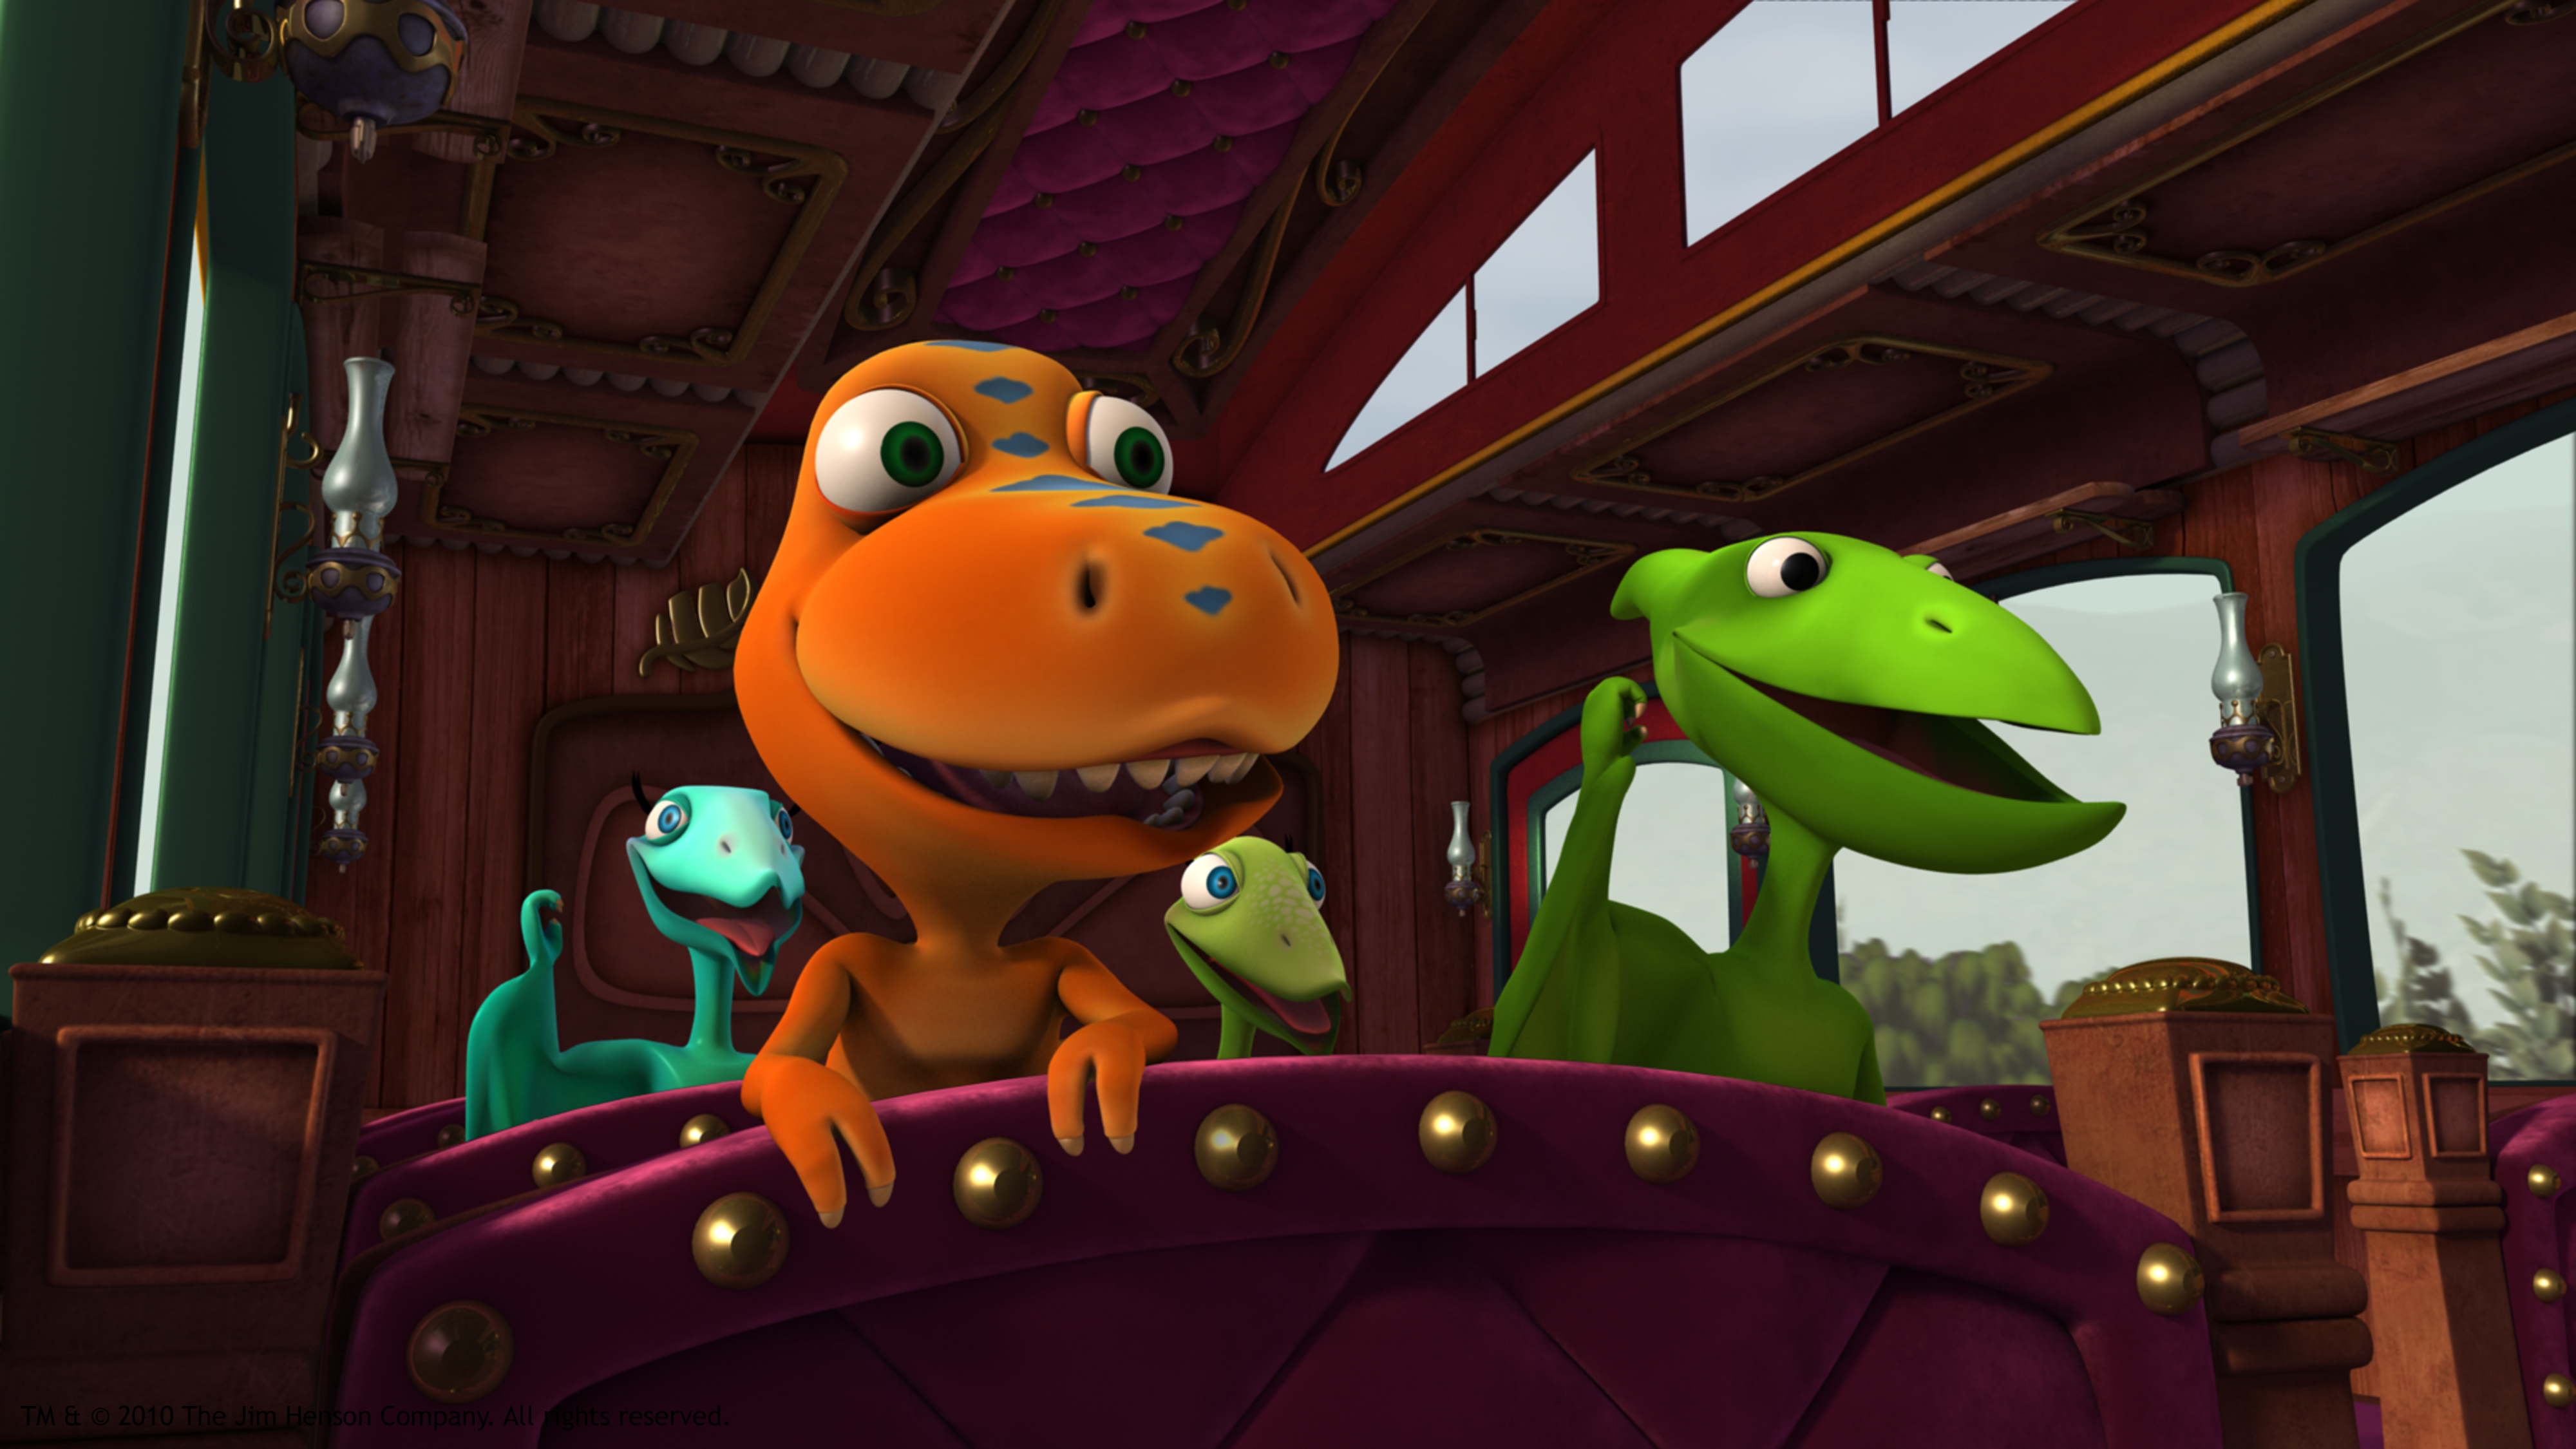 Press Release: PBS KIDS SERIES' VIEWERSHIP JUMPS 33 PERCENT AMONG CHILDREN 4-8 AND 17 PERCENT WITH 2-5-YEAR-OLDS